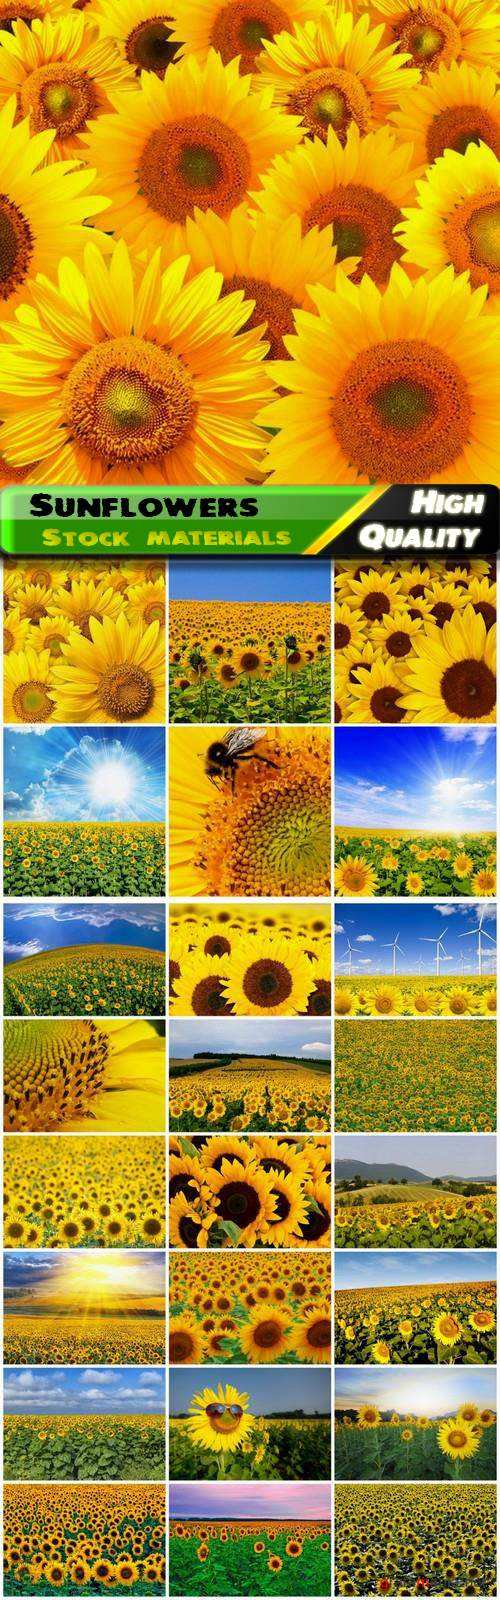 Summer nature landscape and field with sunflowers - 25 HQ Jpg